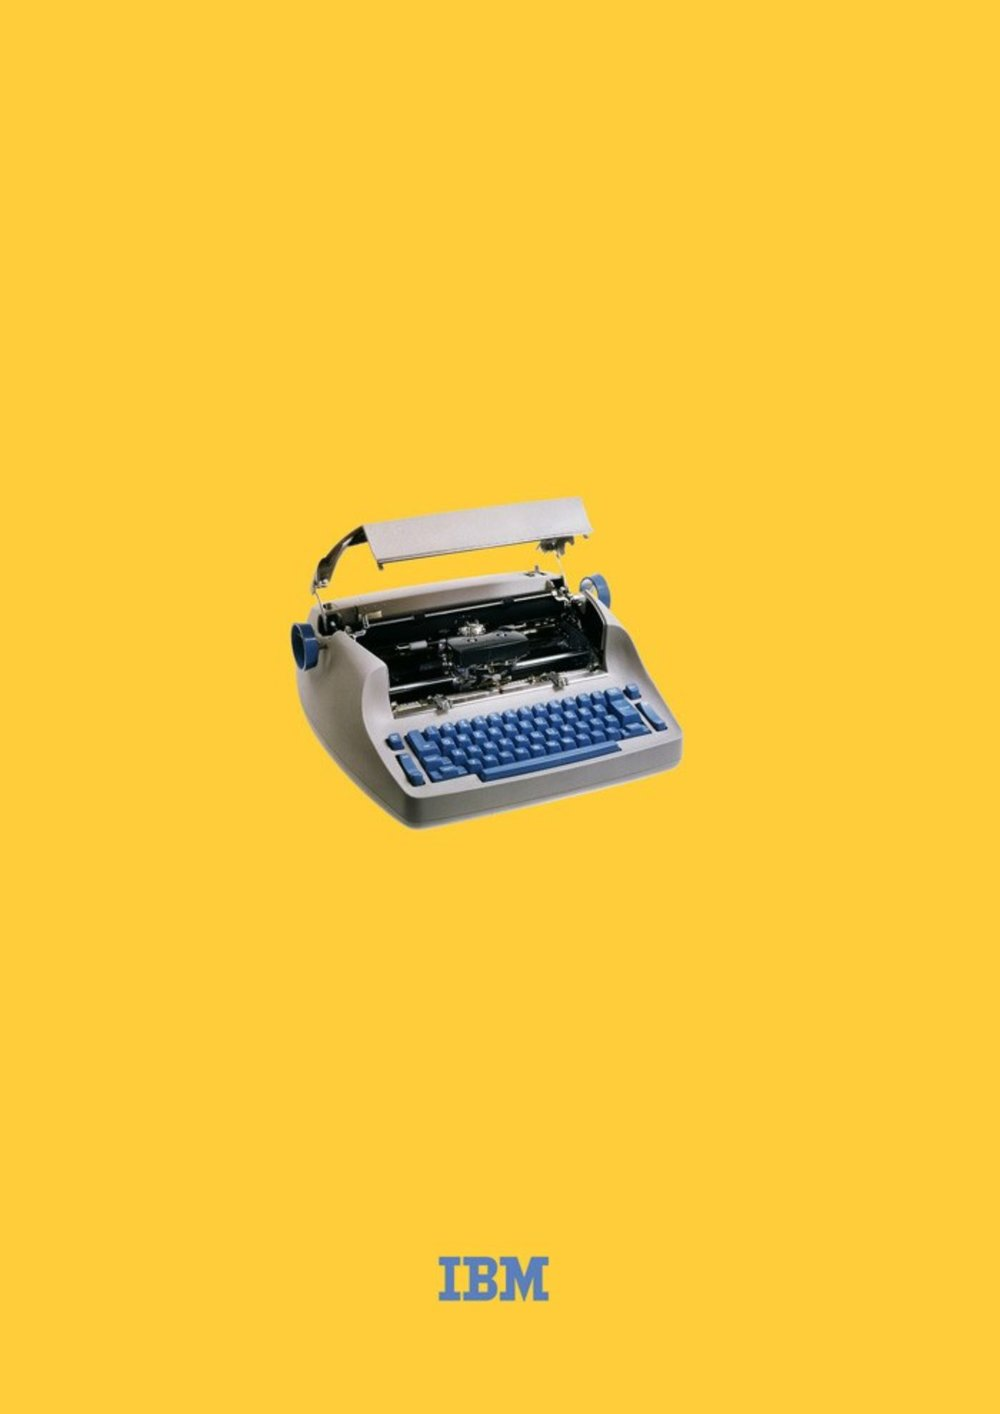 IBM Selectric - Wolff Olins, Su Murphy ~ 2014Poster